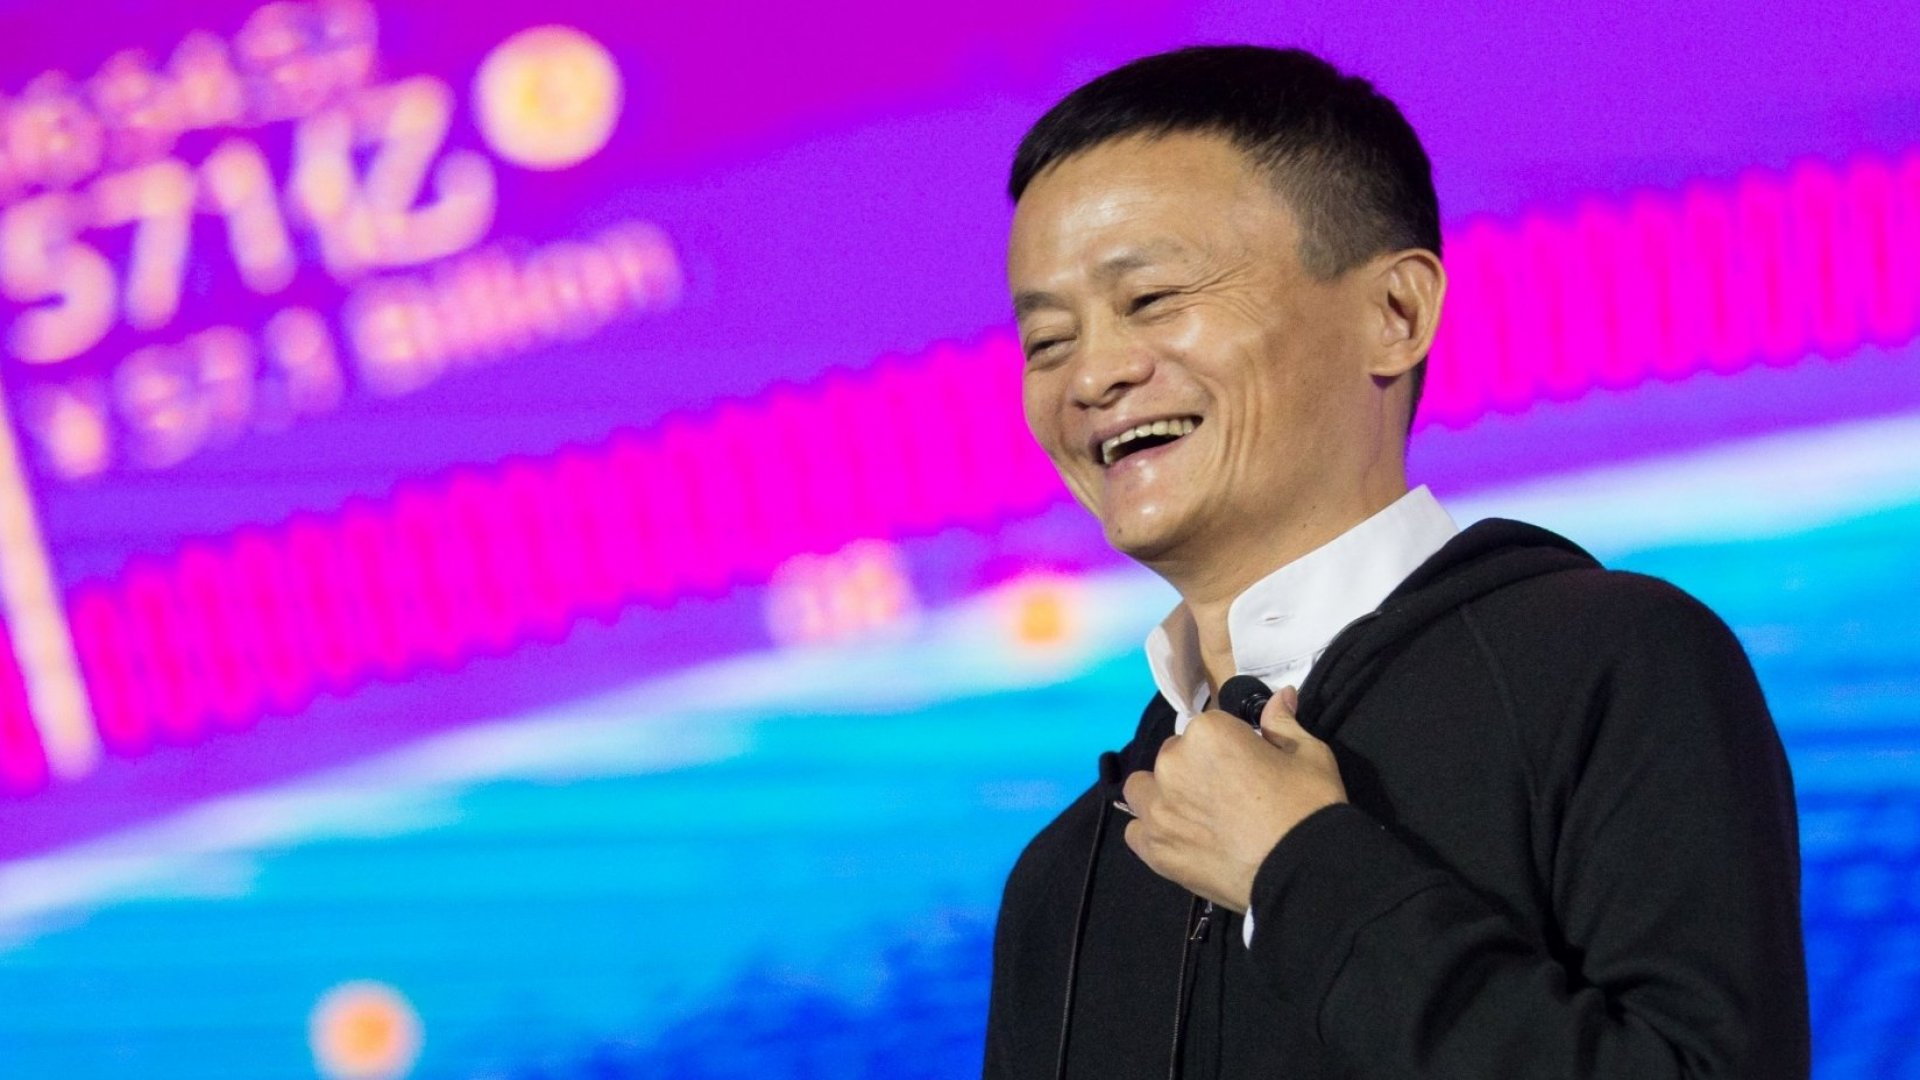 Jack Ma, co-founder and former executive chairman of Alibaba.